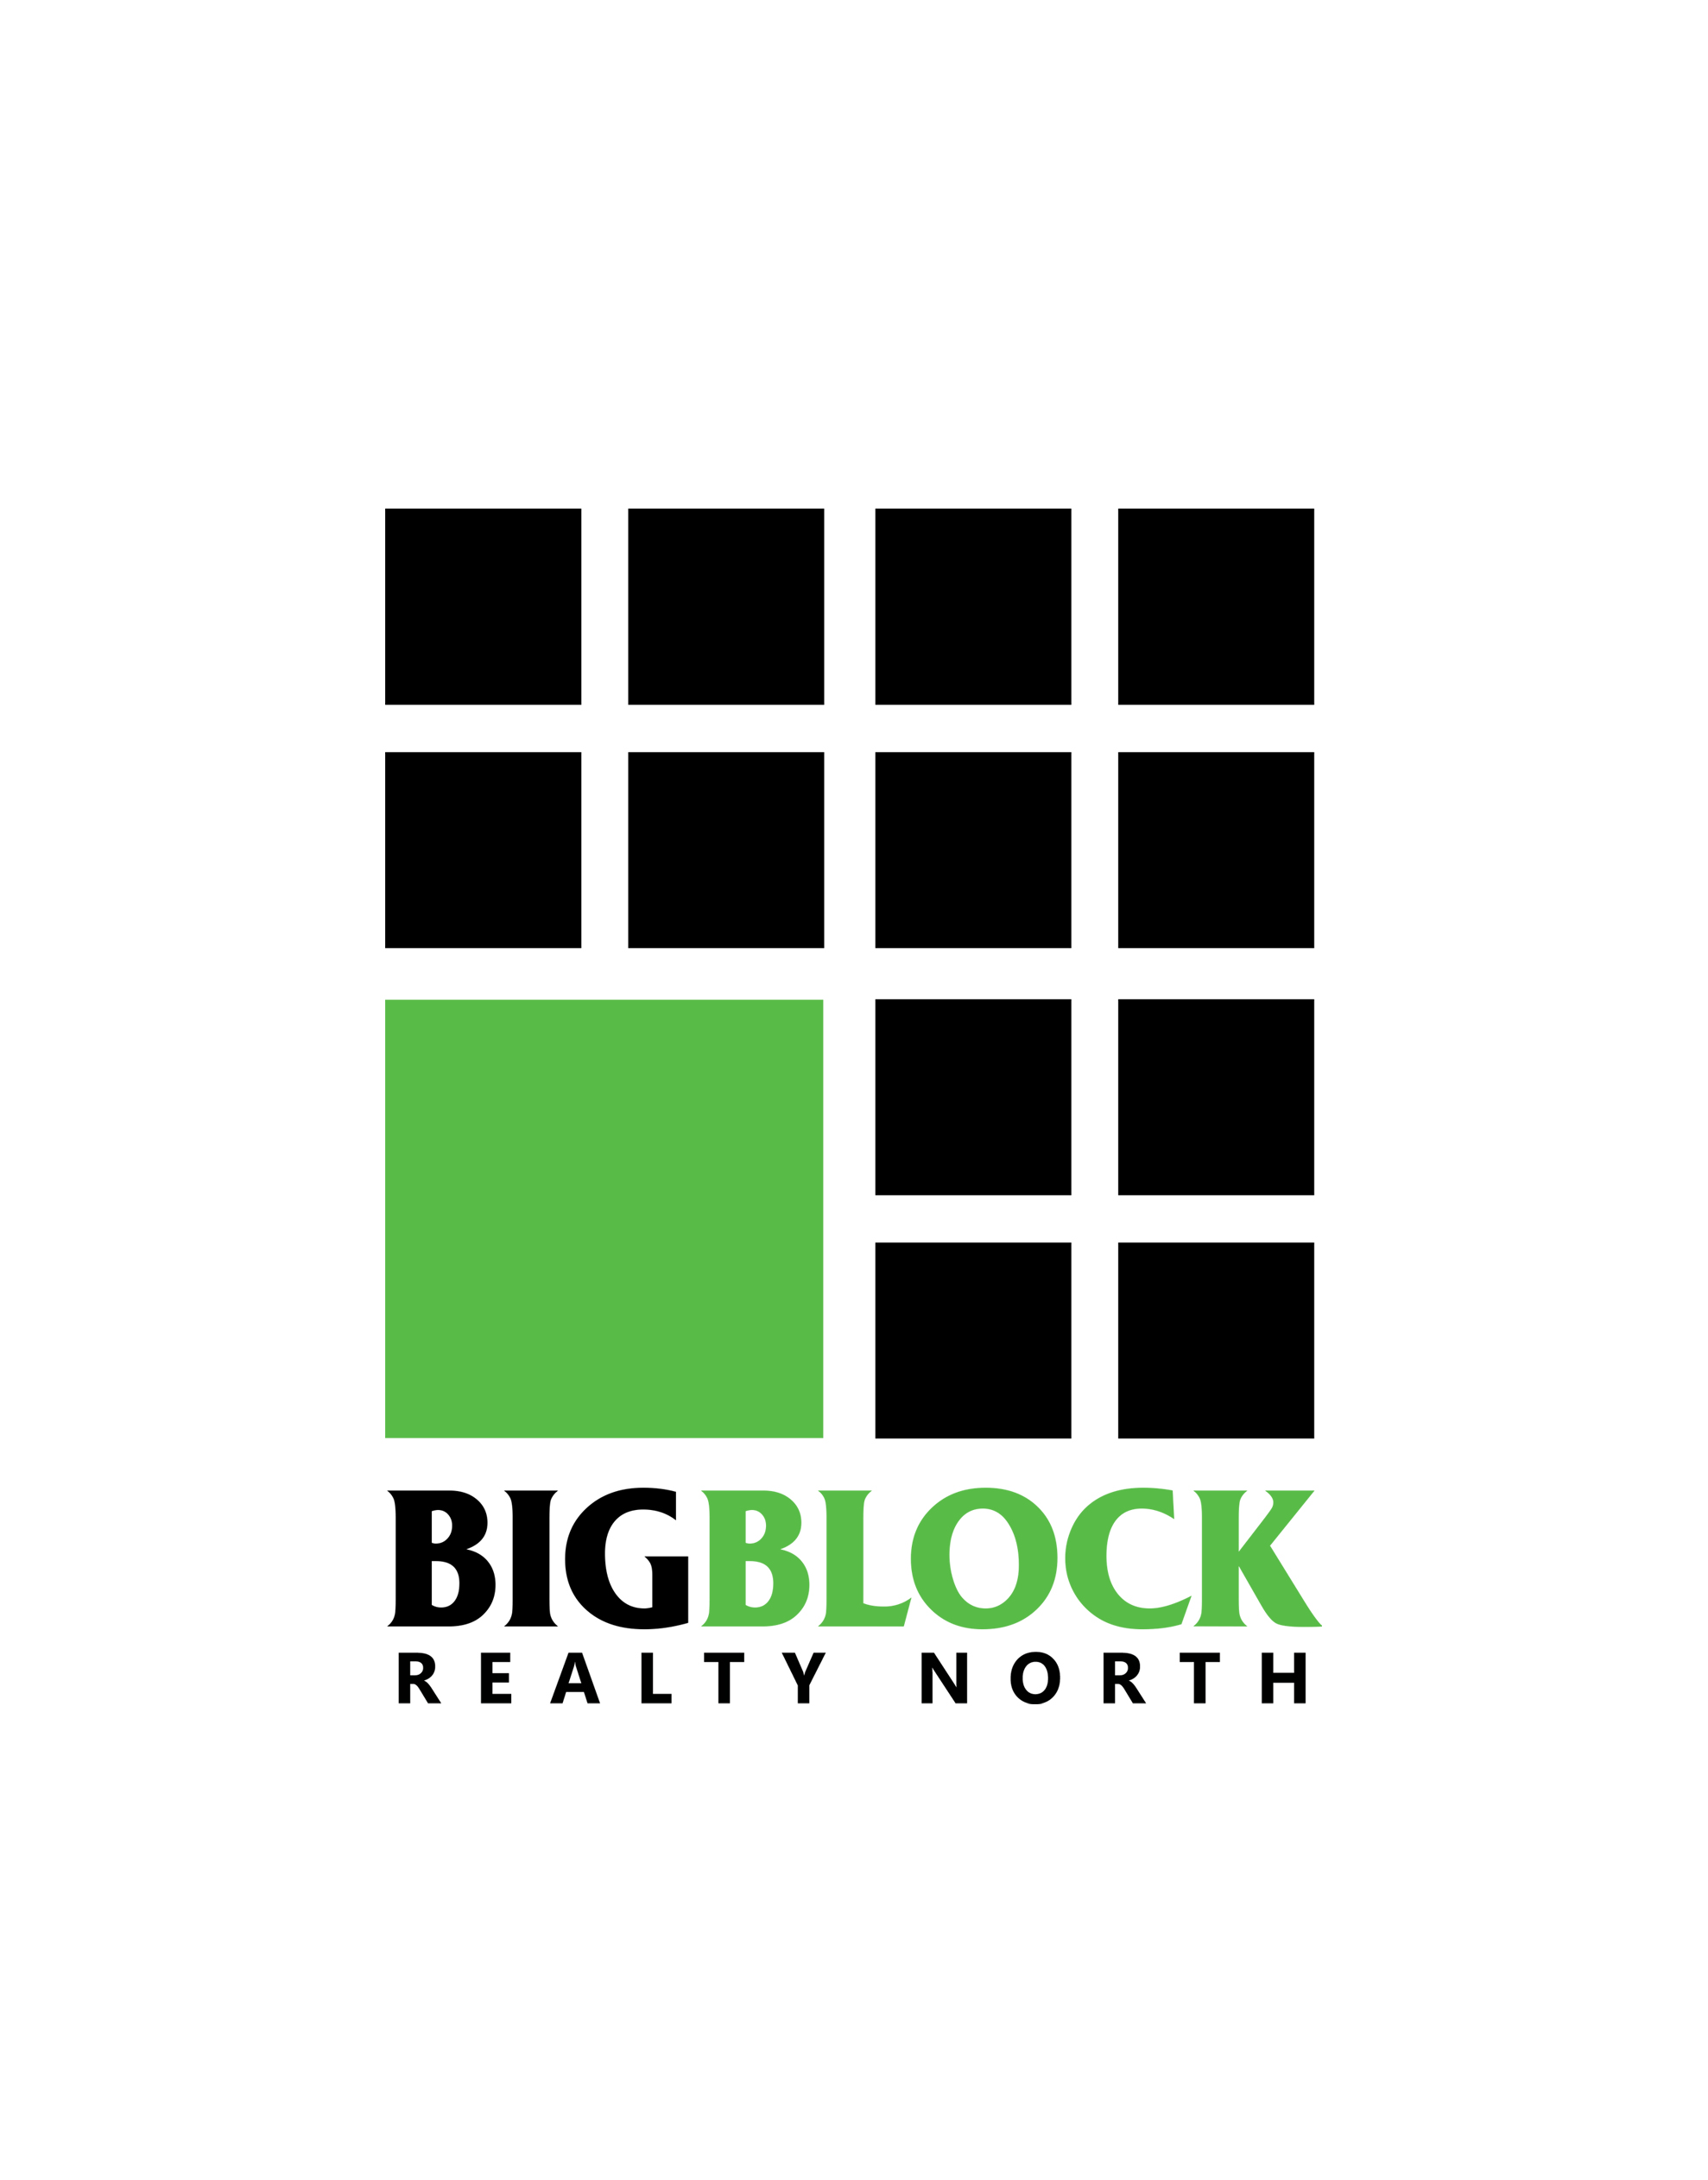 Big Block Realty North logo